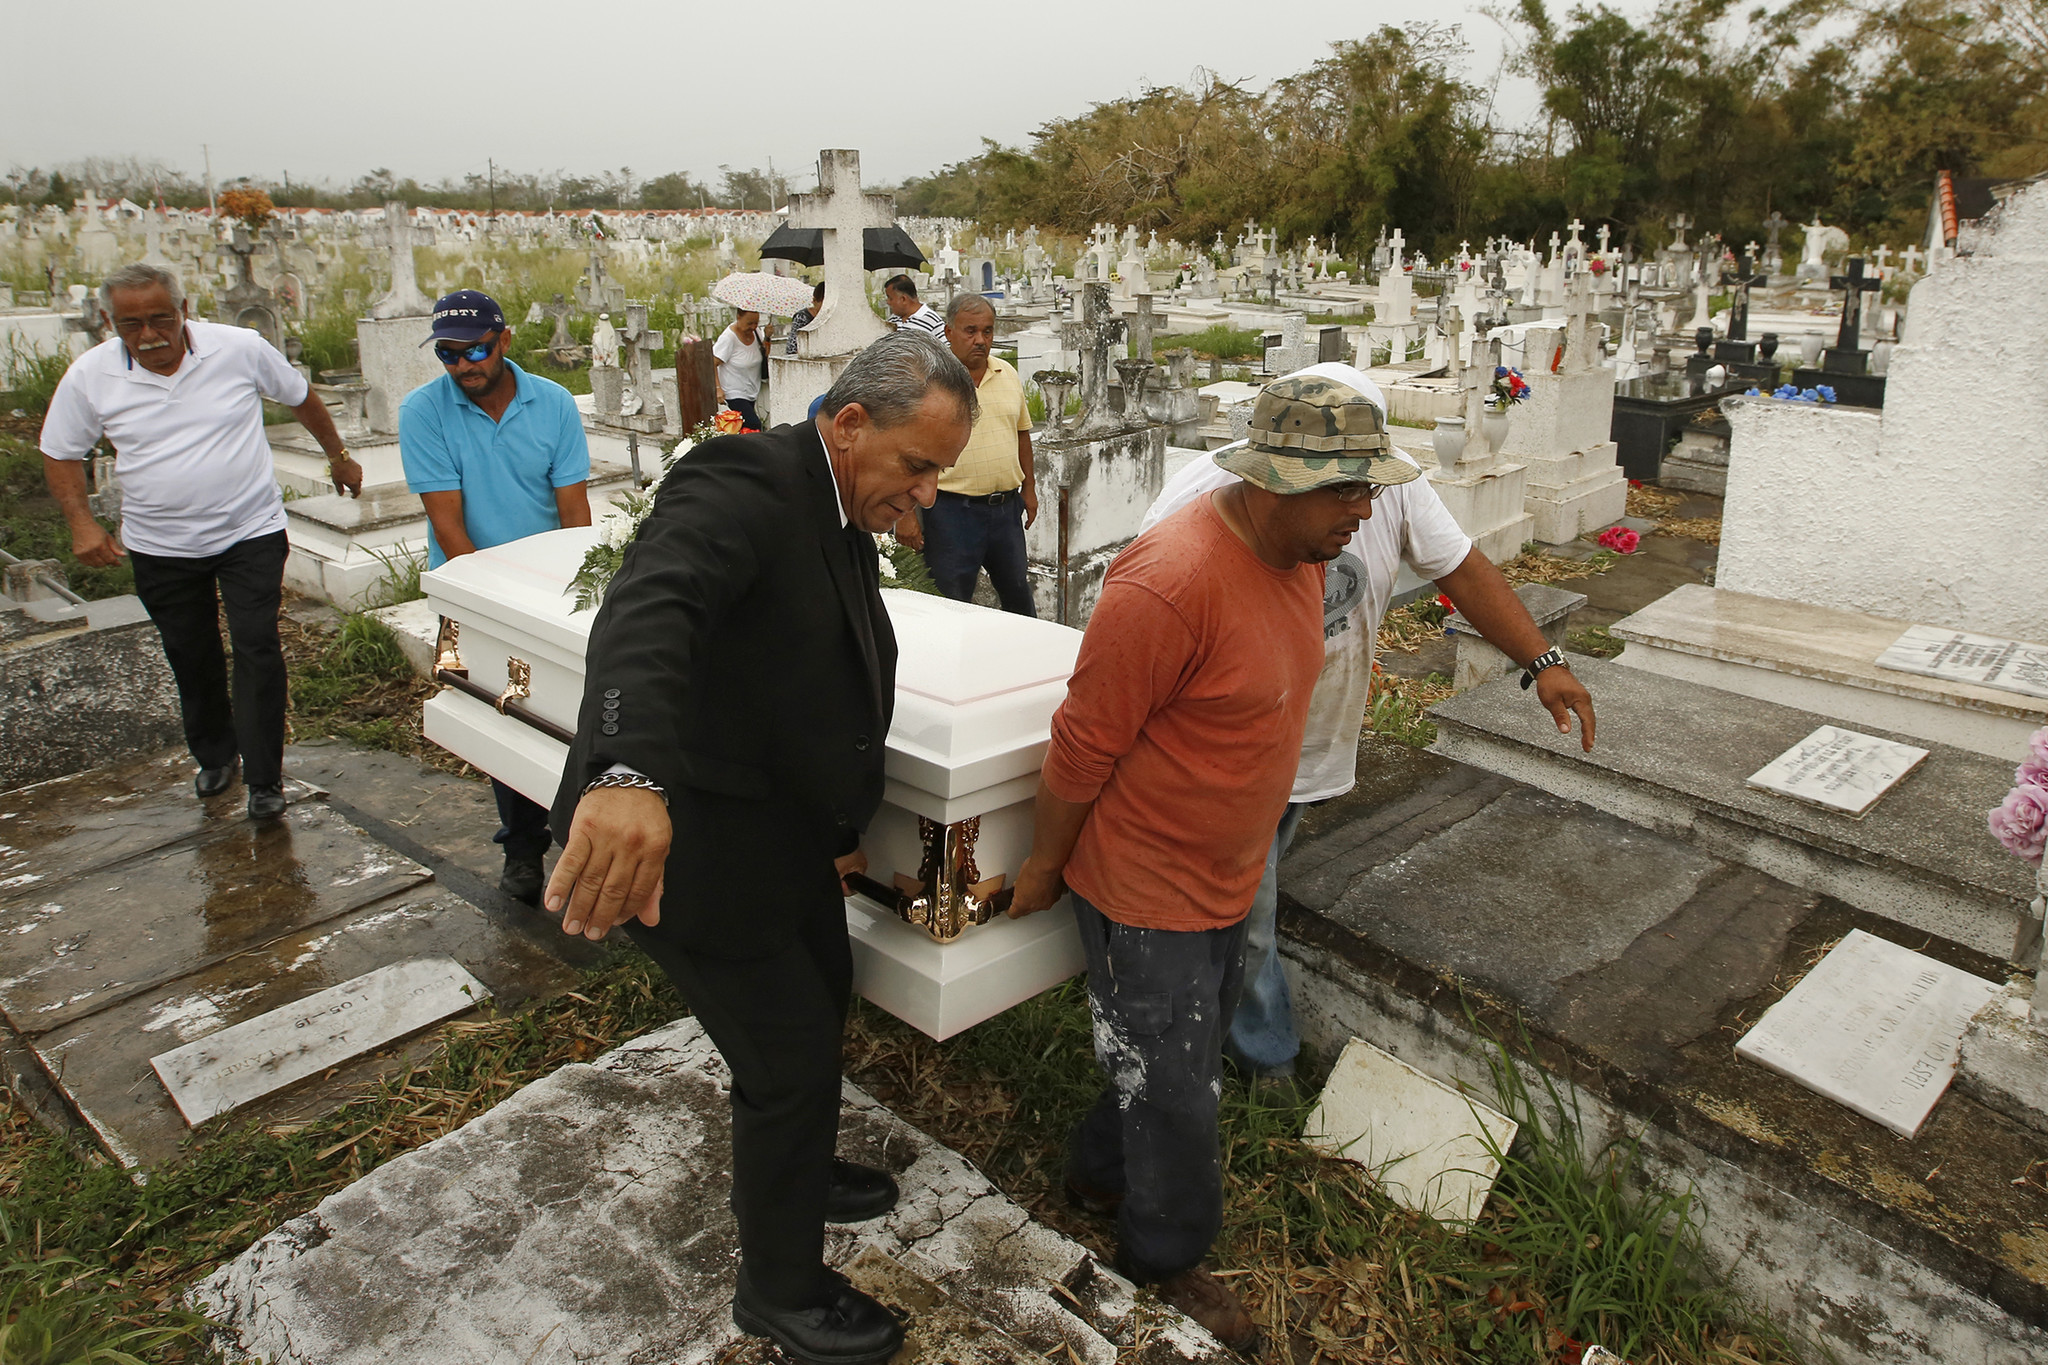 The casket of Norma Casiano Rivera is carried to her grave at the Lajas municipal cemetery.